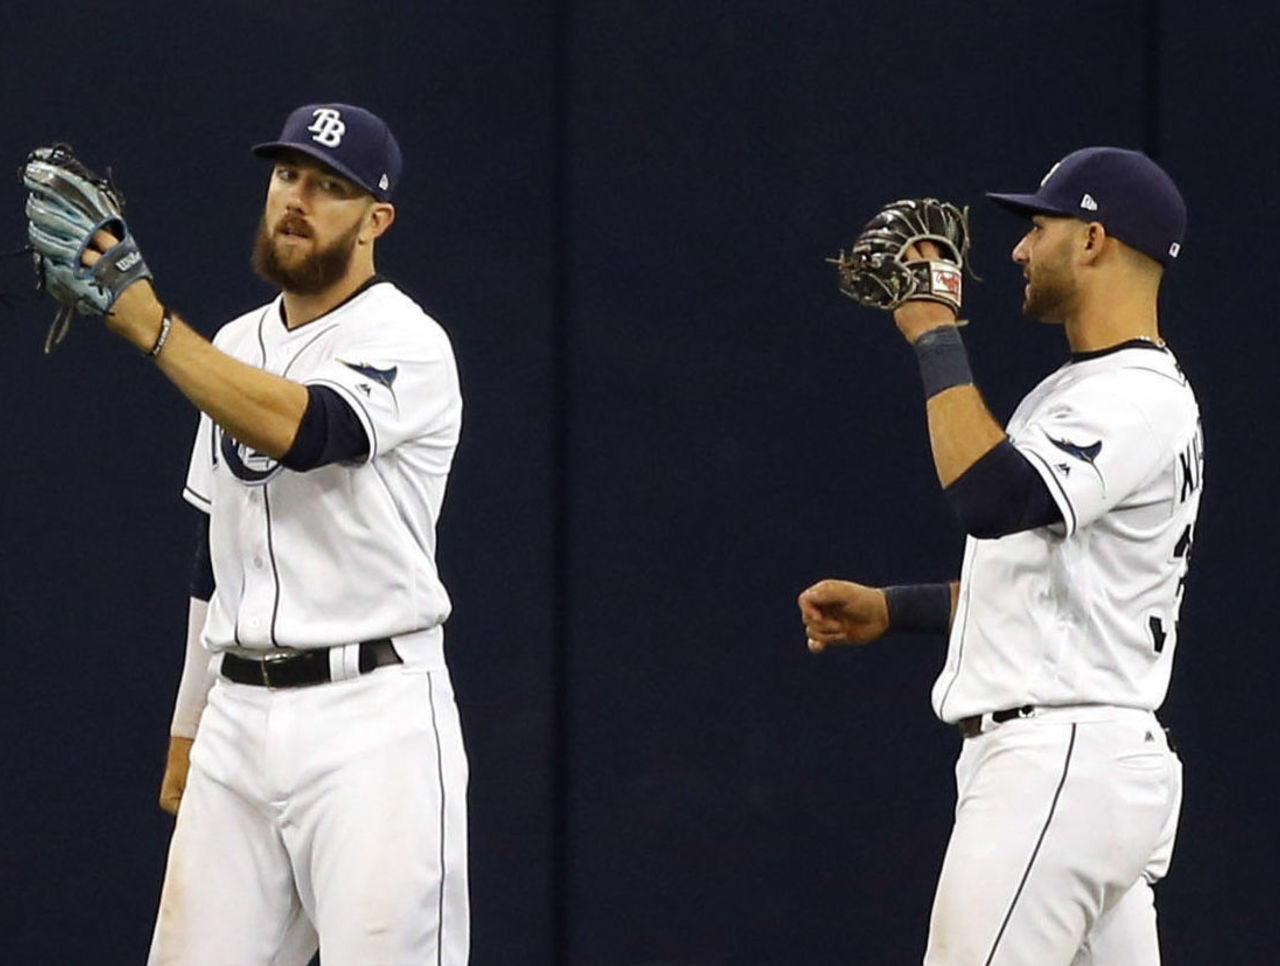 Cropped 2017 05 21t000922z 1705397194 nocid rtrmadp 3 mlb new york yankees at tampa bay rays